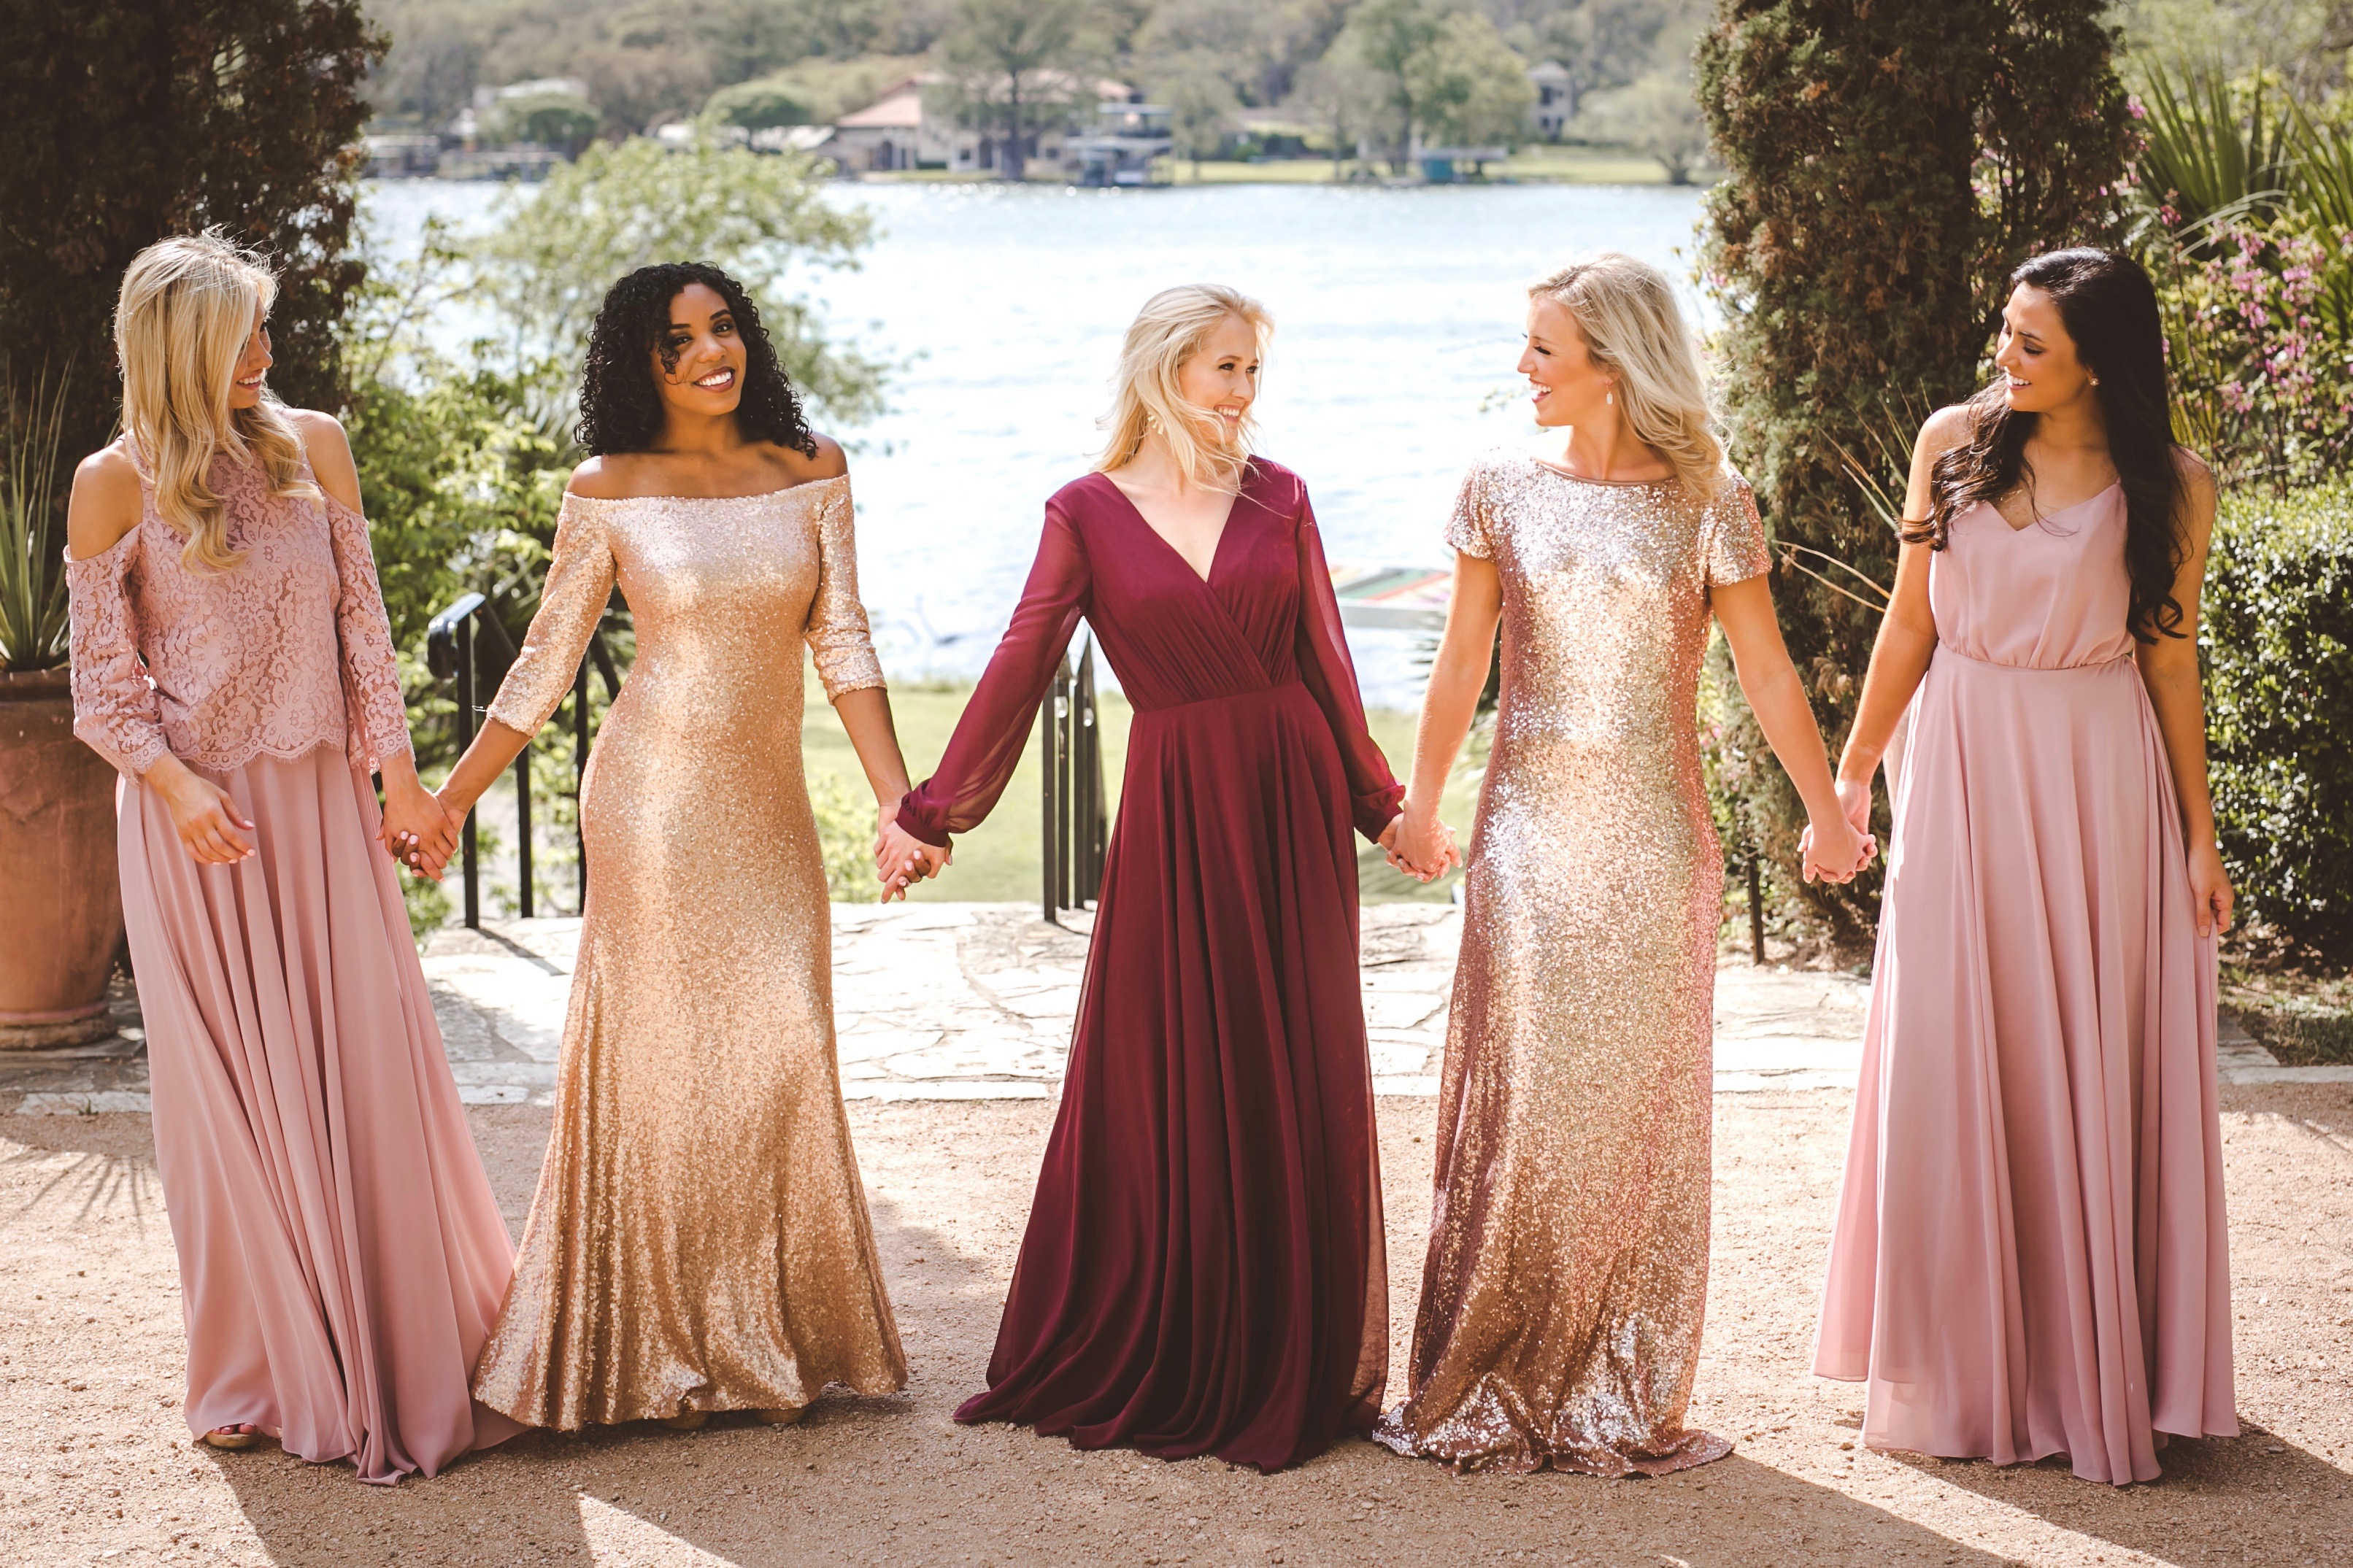 Bridesmaids in blush, gold, and burgundy dress styles in different Revelry fabrics come together for fall looks